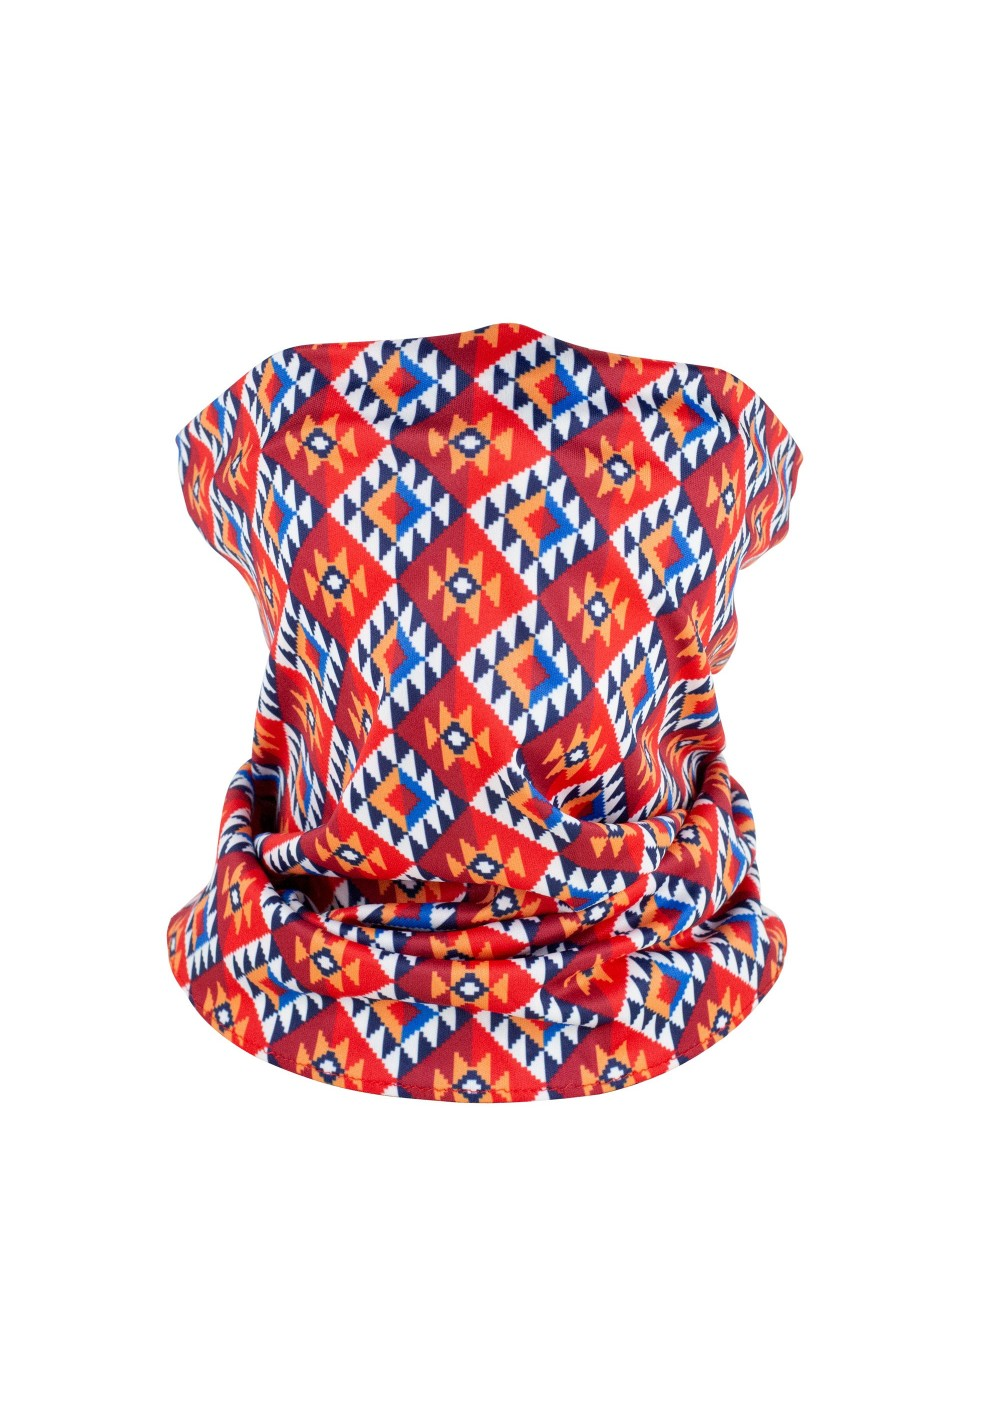 neck gaiter in red and orange tribal print